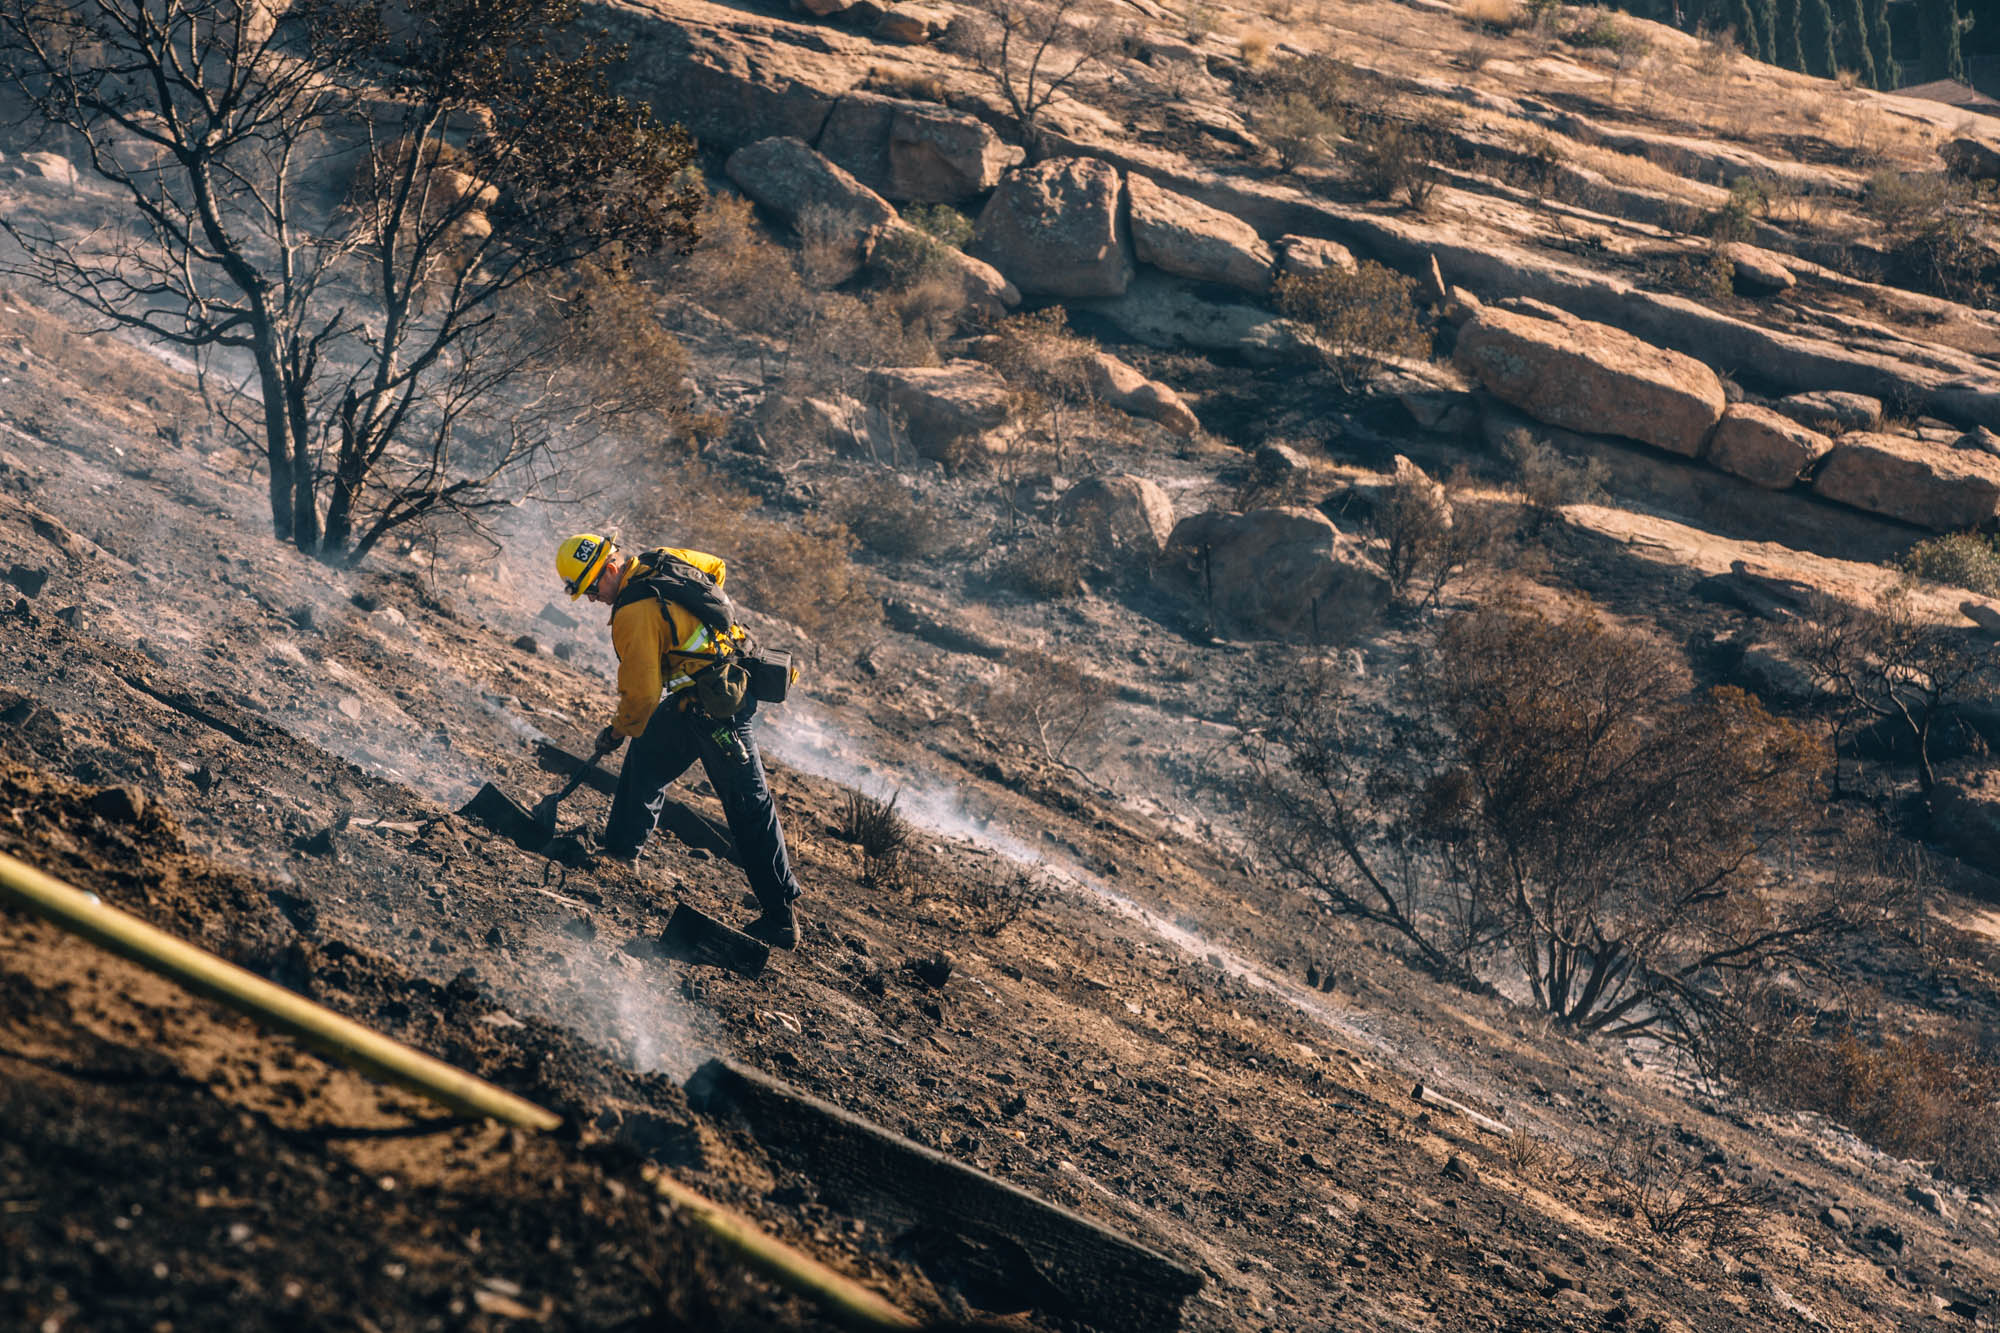 California Burning, Svenska Dagbladet - In November 2018 California burned at both ends, in Northern California's Butte County the Camp Fire killed at least 86 people and became the deadliest fire in state history. In the south in Los Angeles and Ventura counties the Woolsey Fire scorched more than 96,000 acres and killed at least three people.Swedish daily newspaper, Svenska Dagbladet sent me and reporter Sandra Johansson to tell the stories of those affected in Los Angeles by the Woolsey Fire. We met people whose whole lives were destroyed like Antonio Castro, who lived and worked in Malibu for more than 20 years with his wife at Malibu Riding and Tennis Club. The two lived on the property with their son and are unsure of the what the future holds.The fire was so sporadic that some homes were saved like the Sumner family, who evacuated from their home in Point Dume in ten minutes with their three children. They mourned their home after seeing their street being burned down on social media only later to find out it was one of the few saved. Finally, we spent time with Melody Riggs who retired in Seminole Springs Mobilehome Park and lost everything during the fire. She has a long road of building back her life but remains grateful that she was able to evacuate and has family supporting her.This is the start of these families making sense of what happened and trying to rebuild their lives.